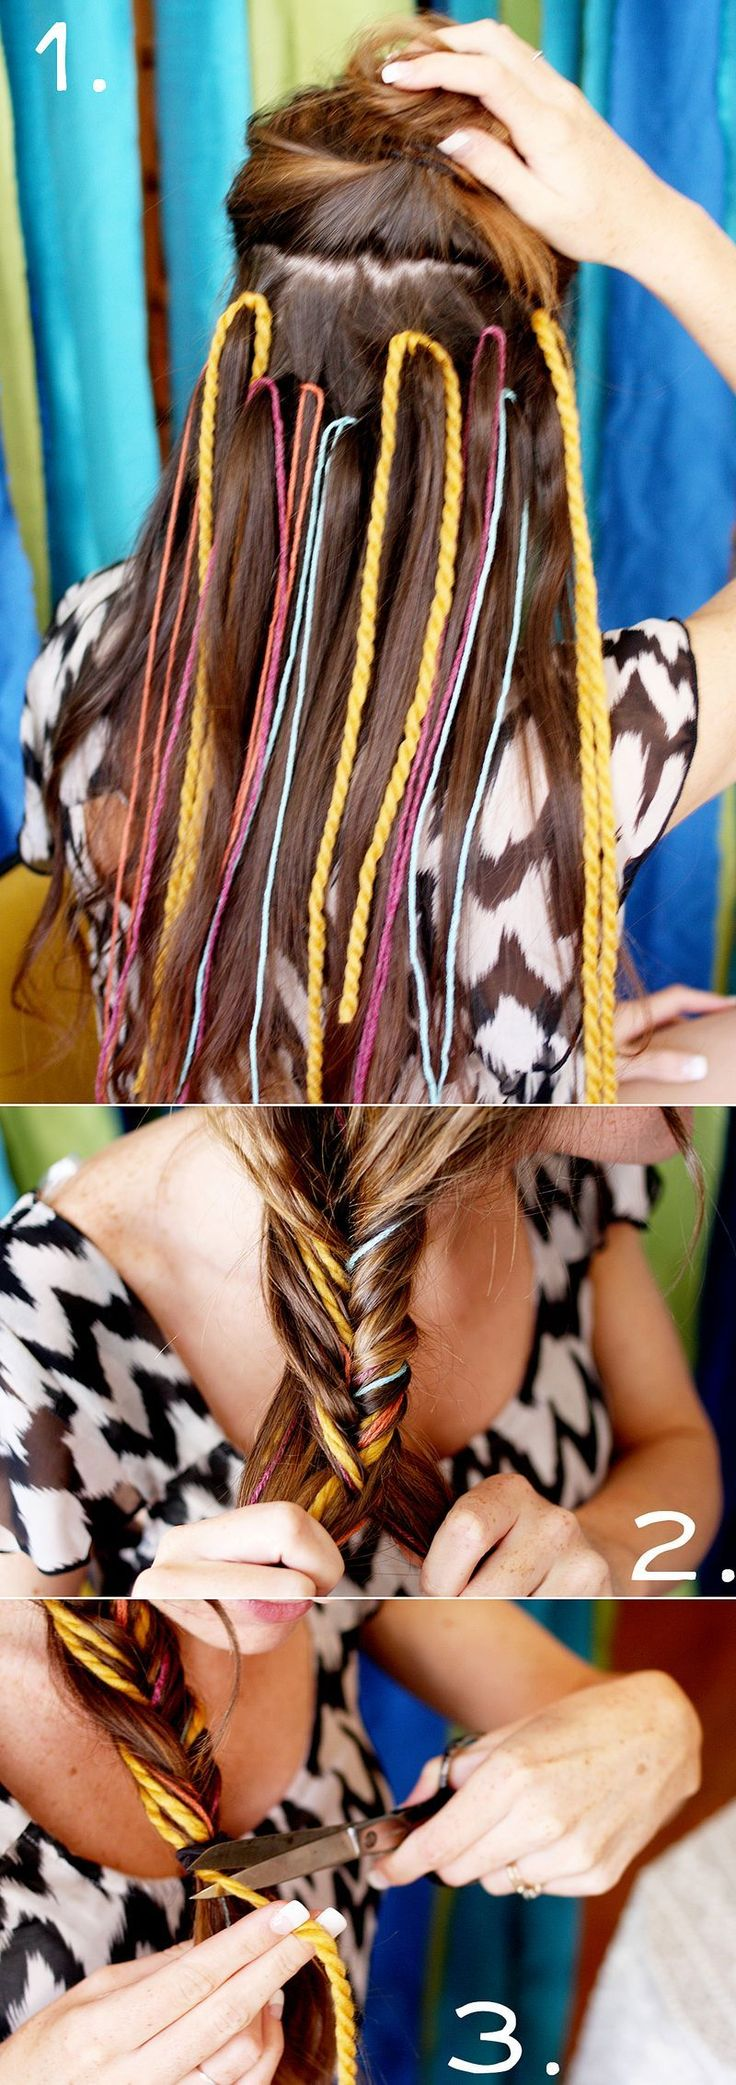 Weave a little something colorful into your next fishtail braid. #hair #tutorial